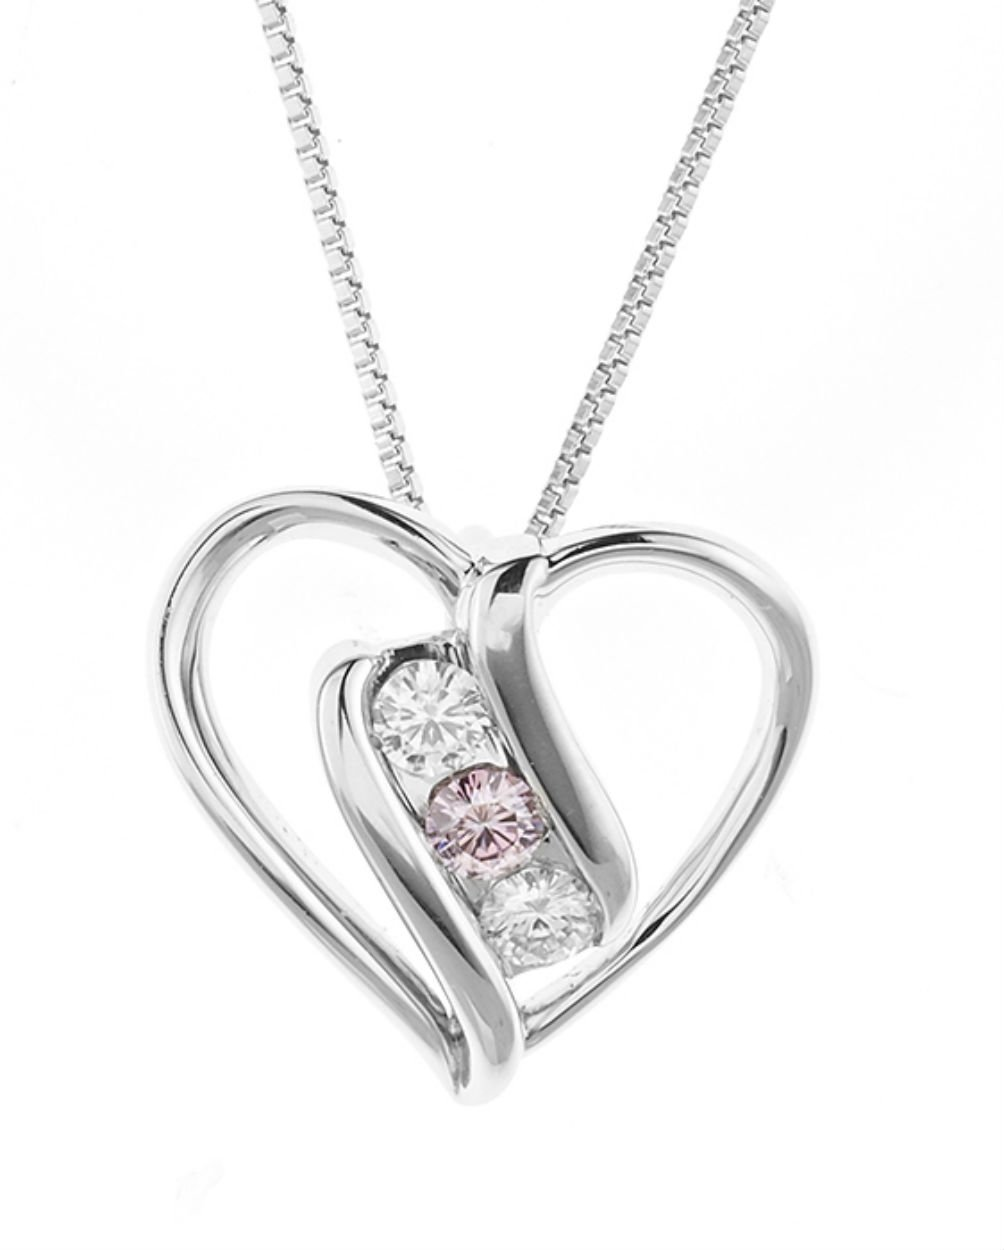 Forever Classic Round 3.0mm Heart Moissanite Pendant Necklace, 0.30cttw DEW By Charles & Colvard